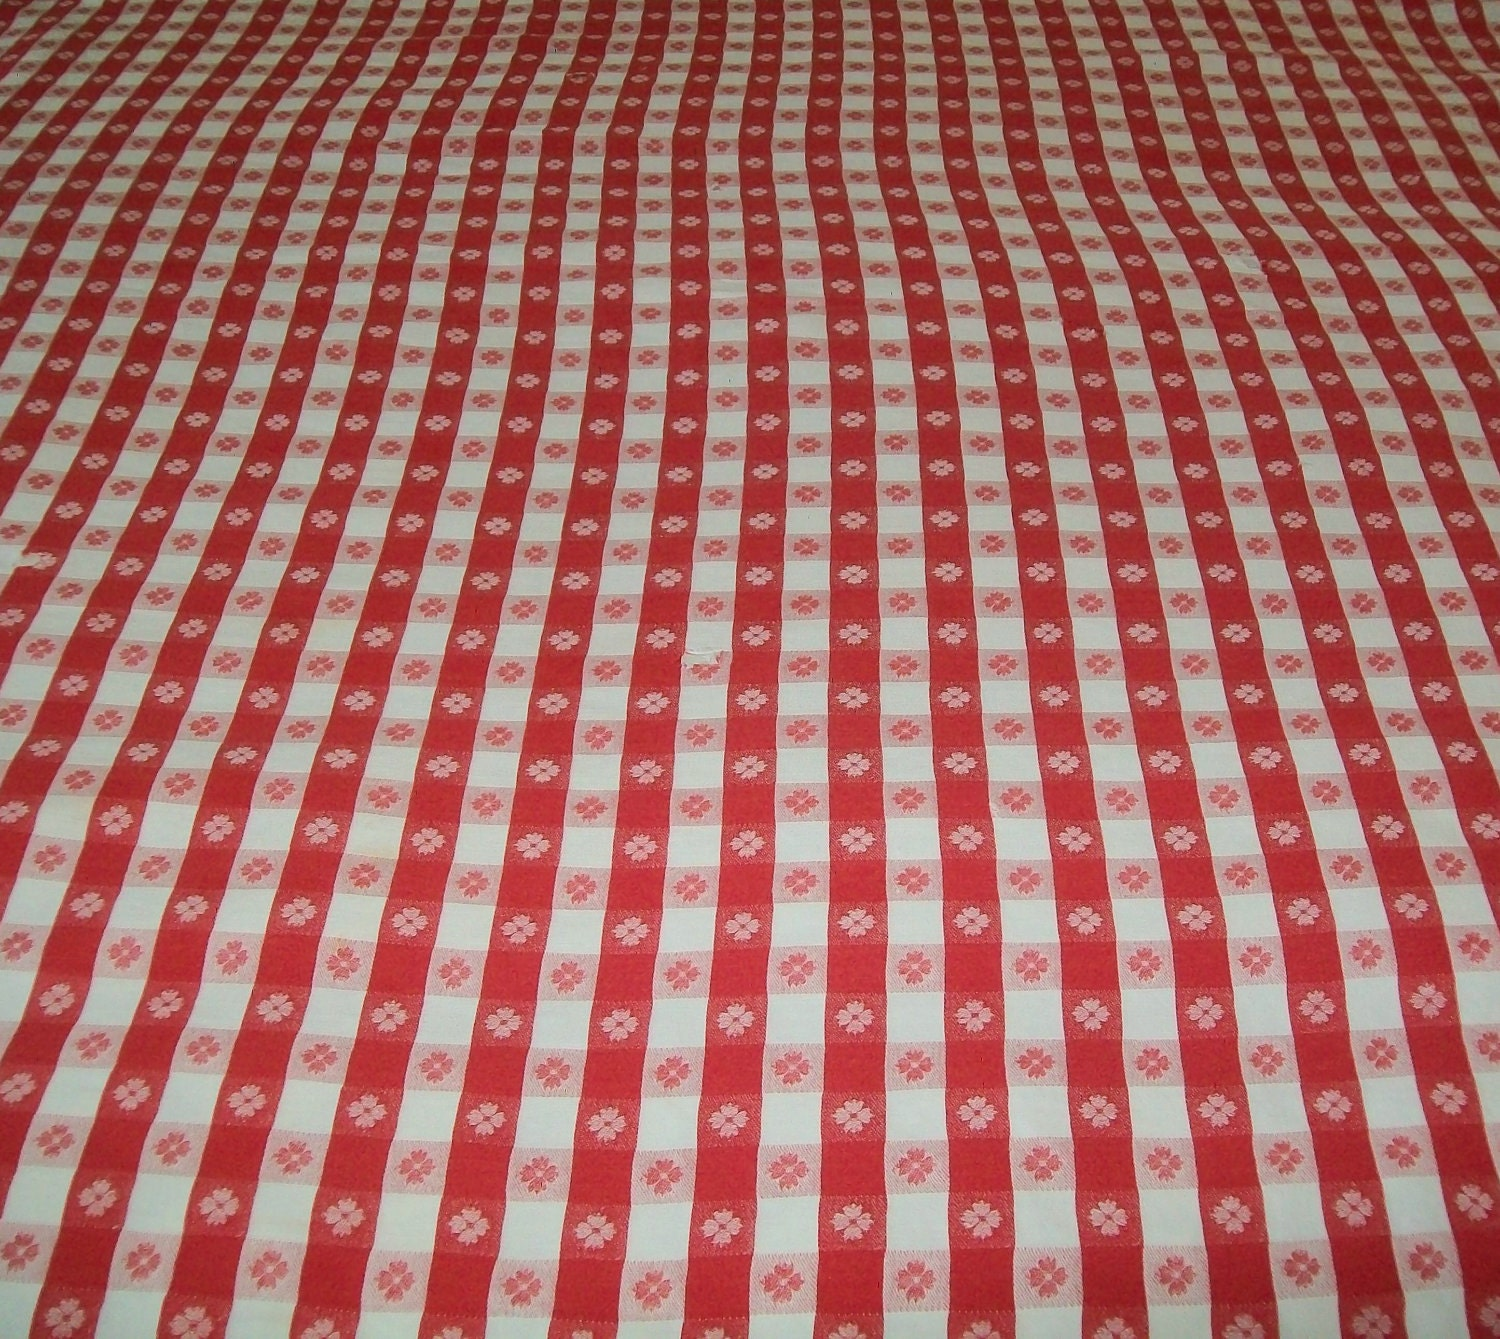 Vintage Red Checked Tablecloth Red White Checked Classic